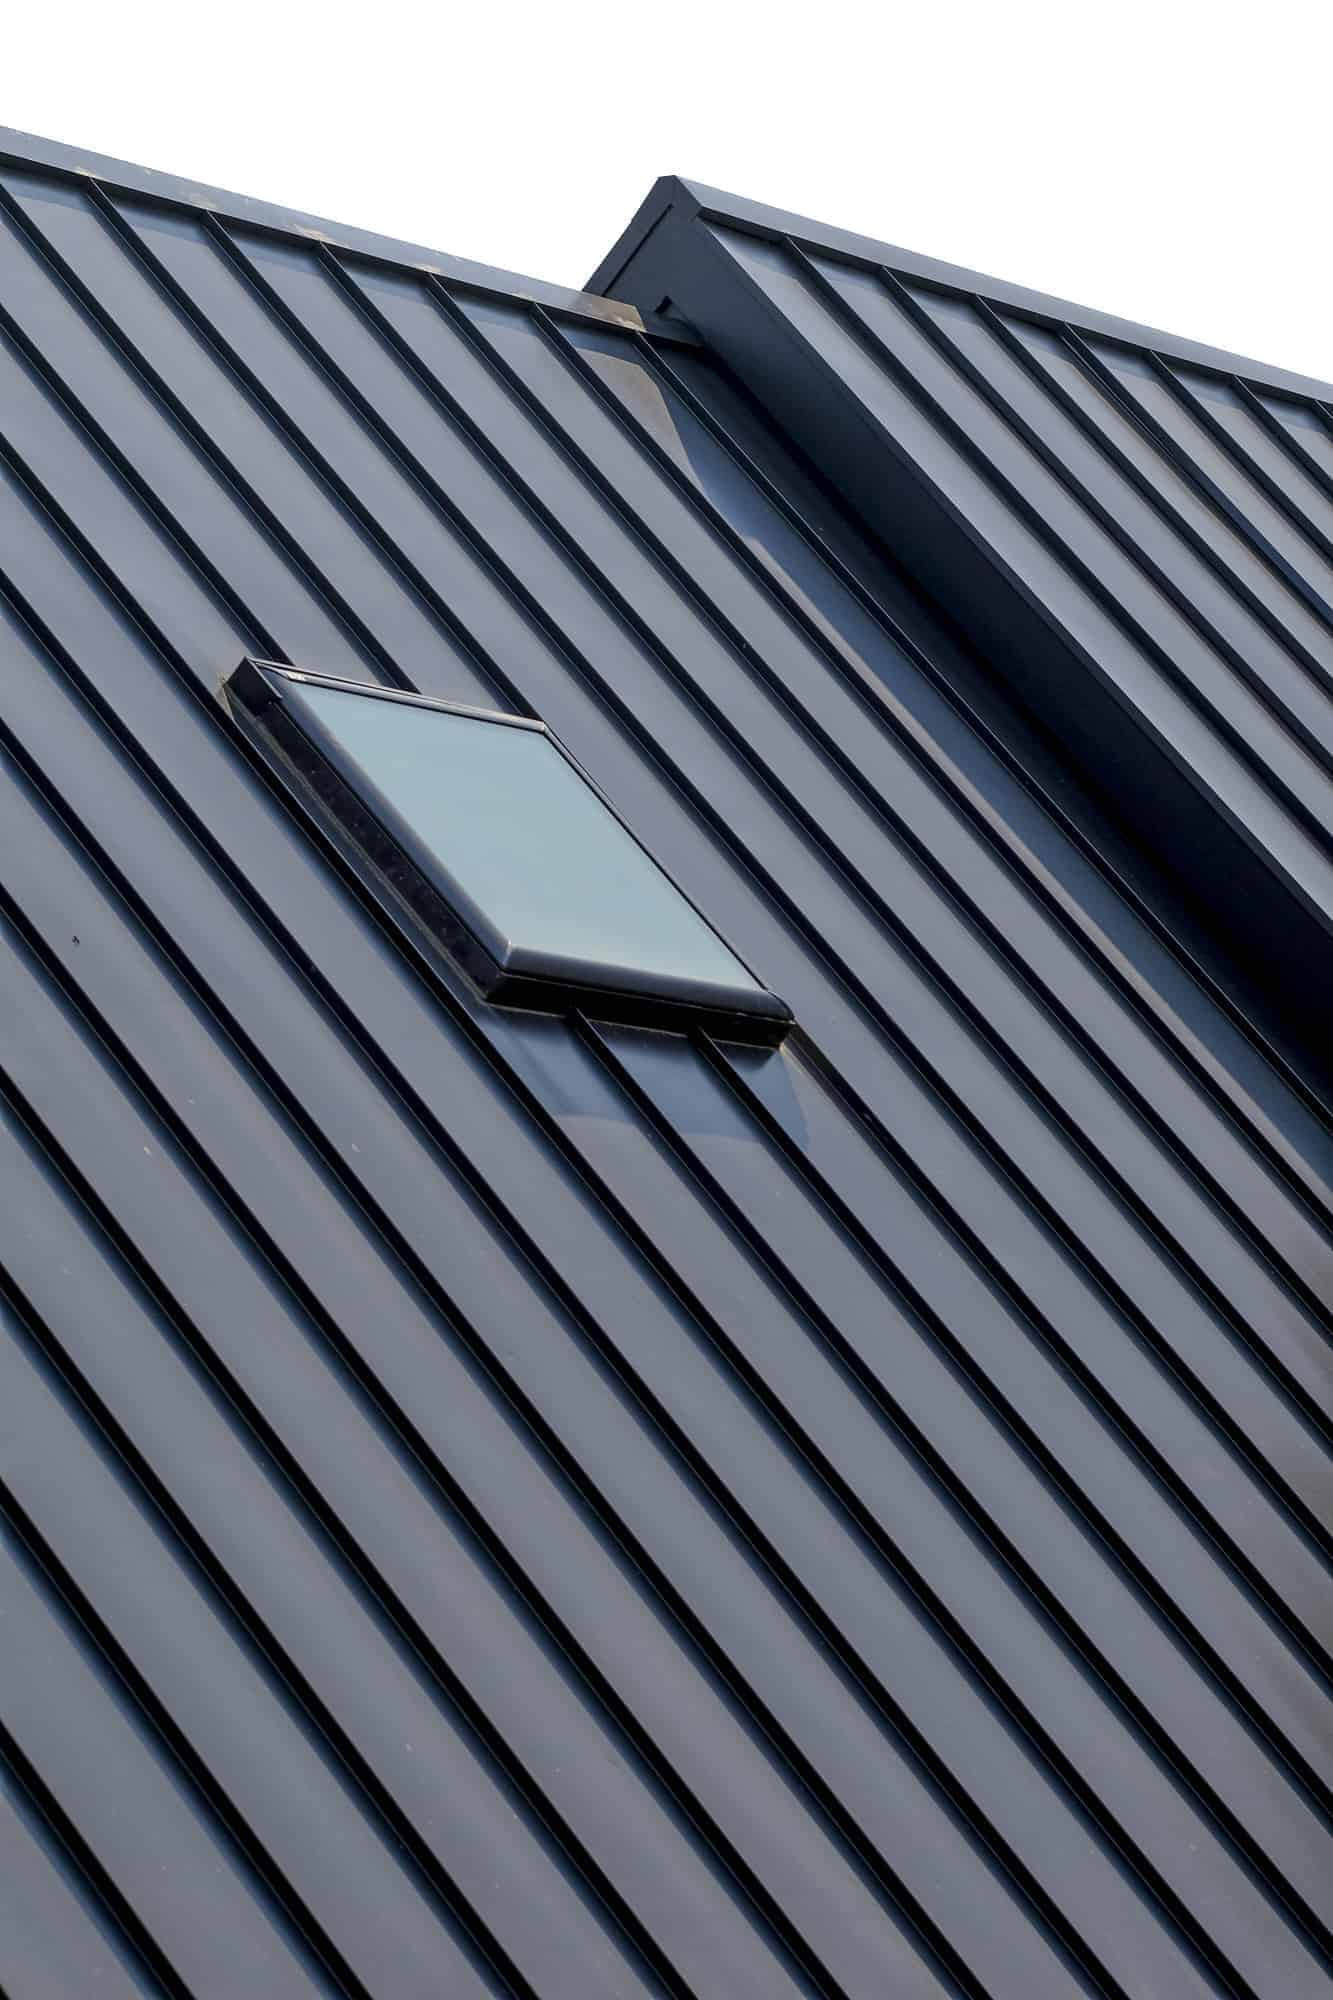 Snaplock Roofing with Strong Bold Lines